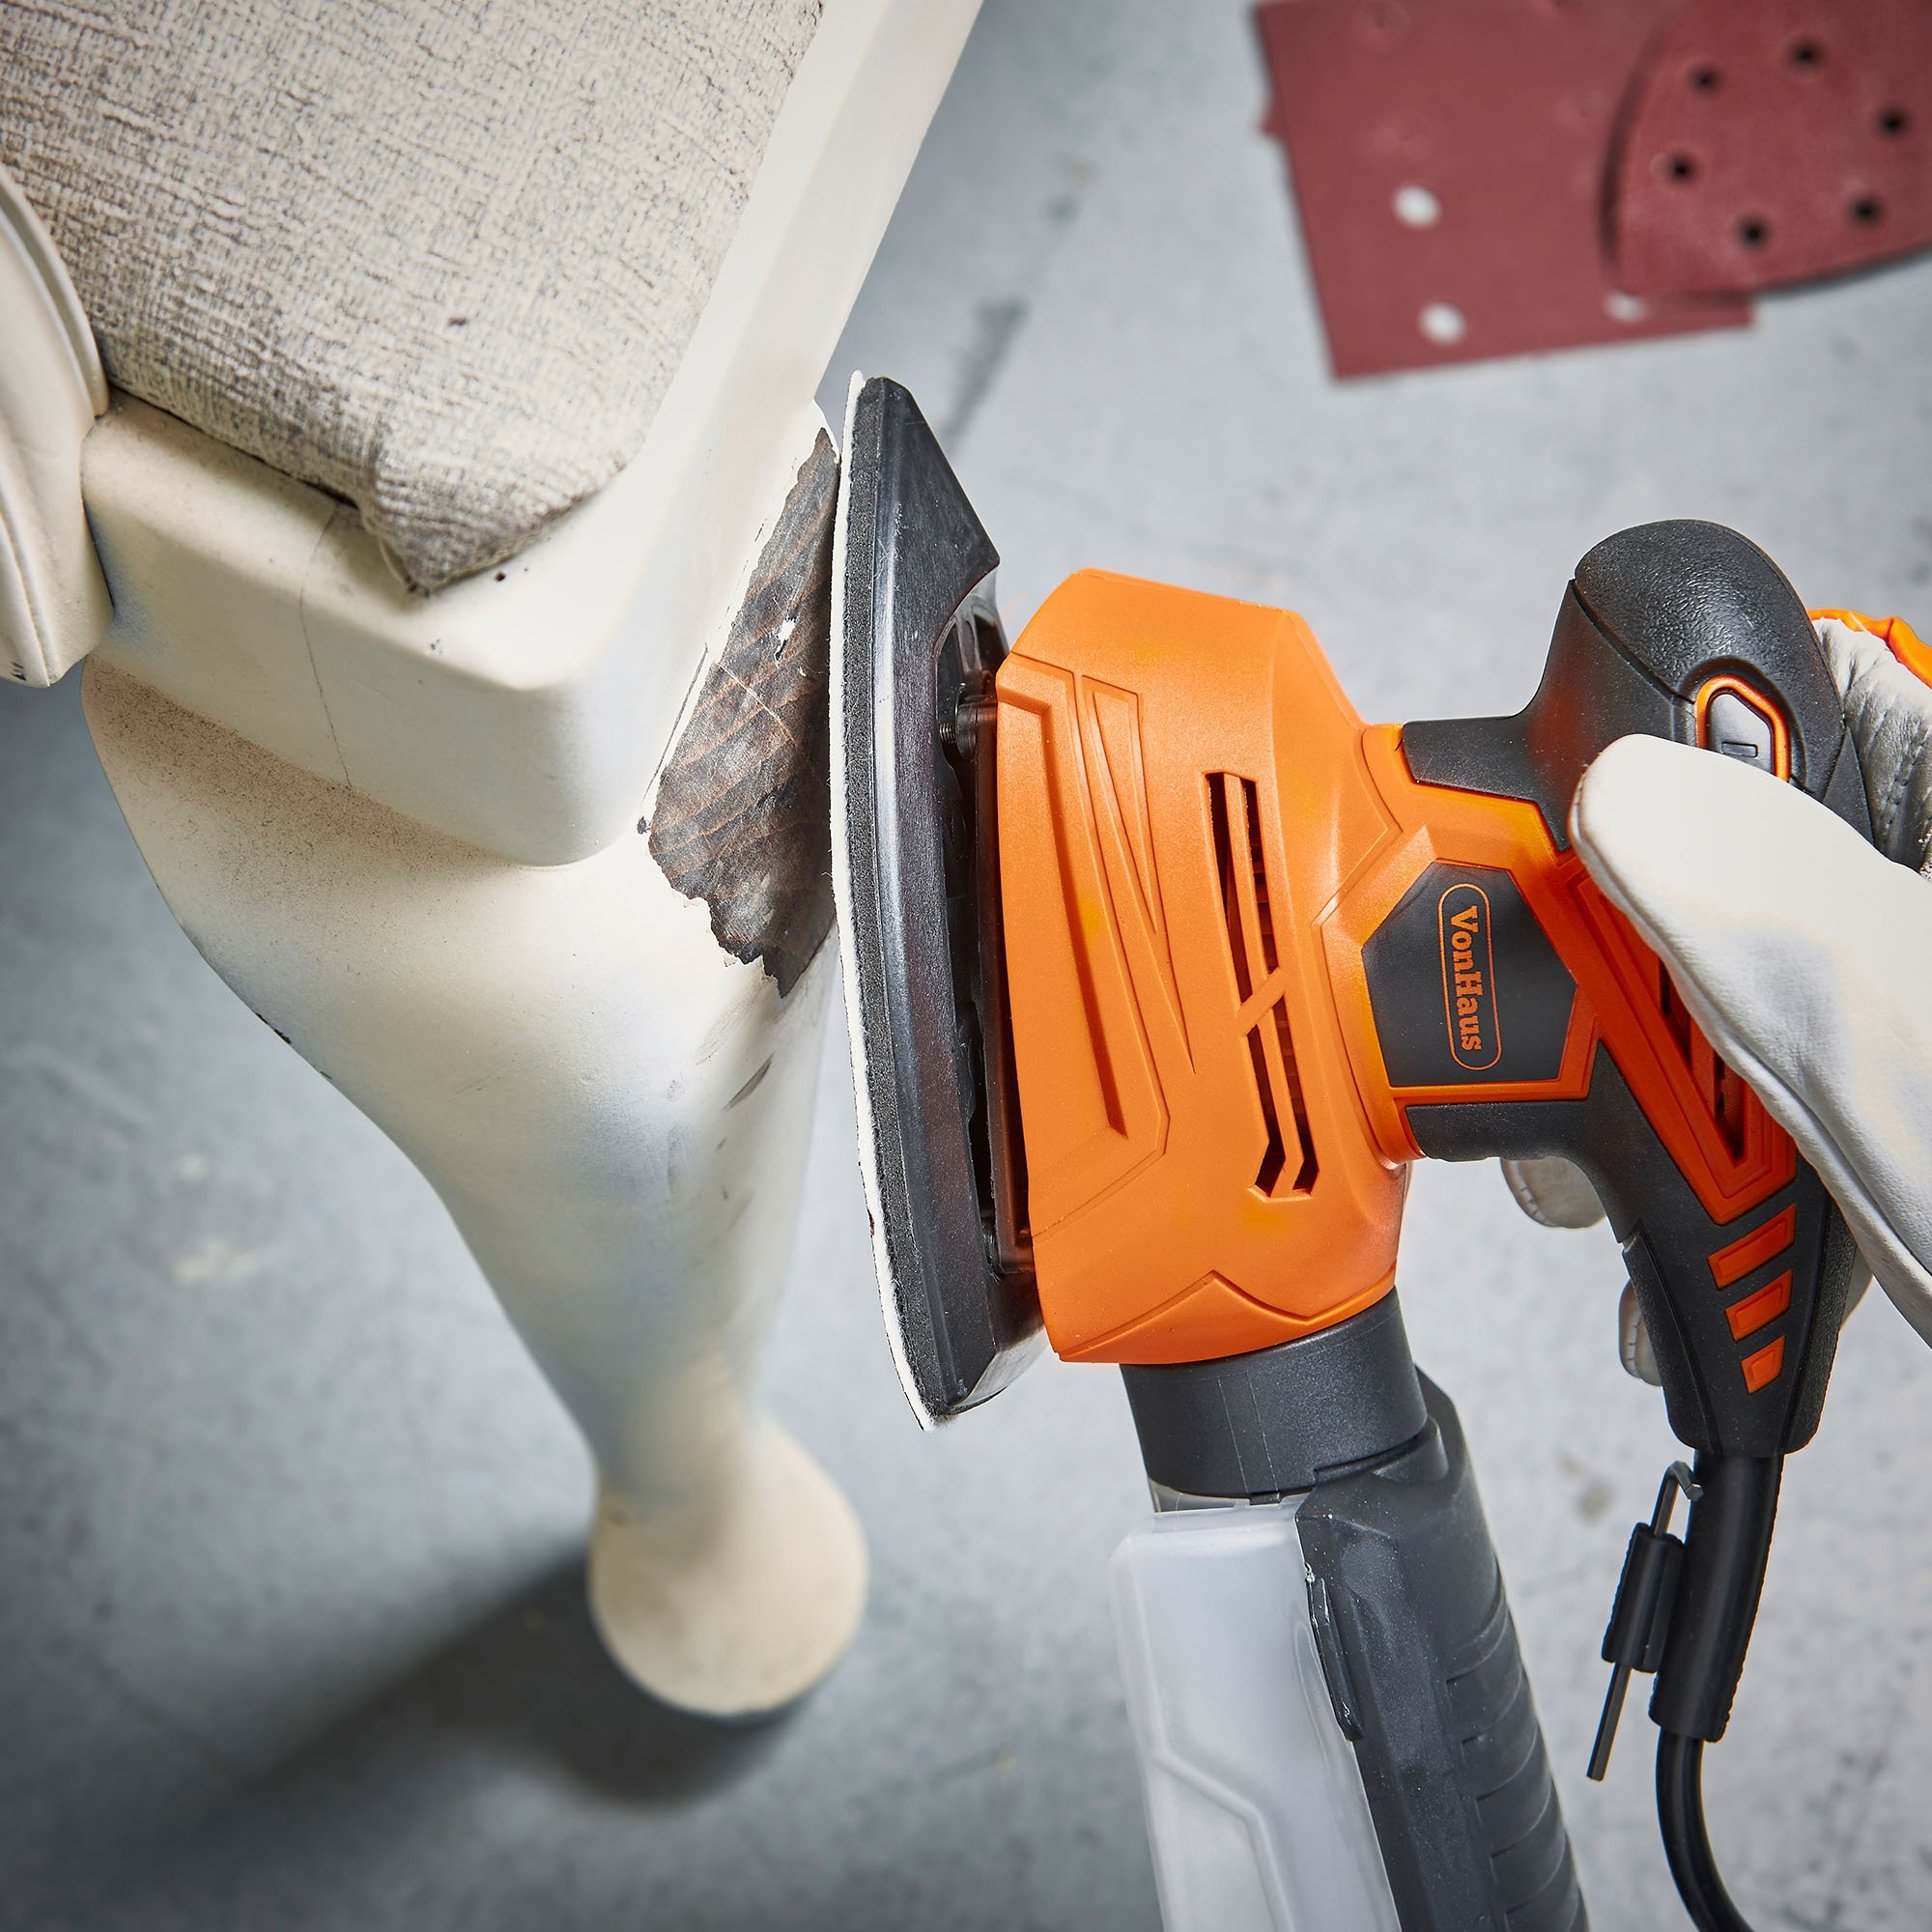 VonHaus 1.1A 2 in 1 Sheet & Detail Sander - 14000 RPM with 6 Sanding Sheets Included - Multi-Use, Compact Lightweight Design with Dust Extraction System and 6ft Power Cord by VonHaus (Image #2)